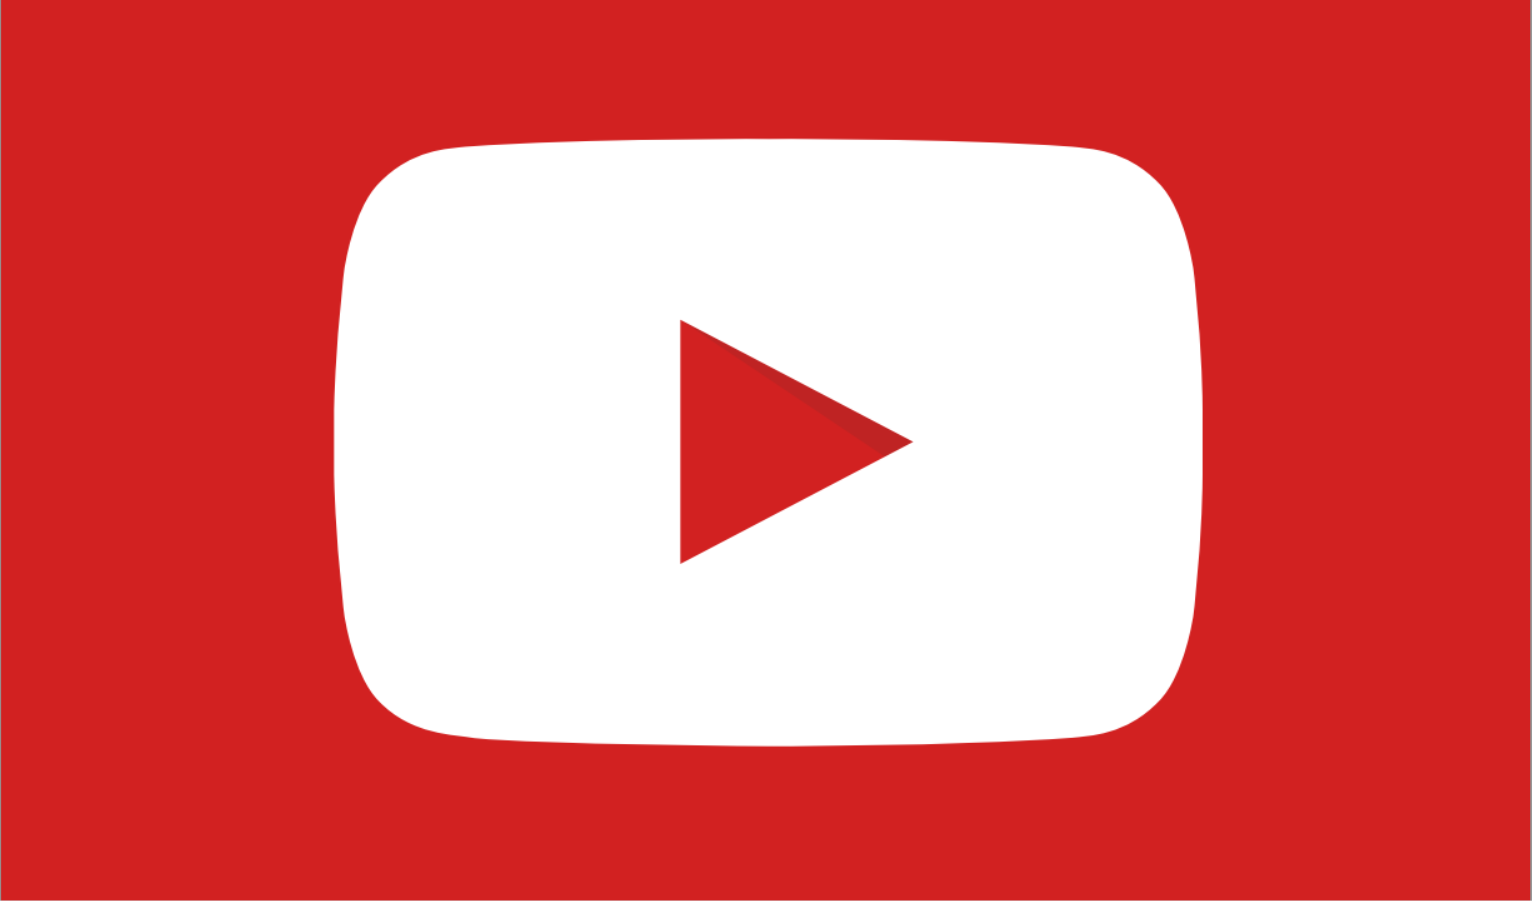 Youtube Play Button Vector - ClipArt Best